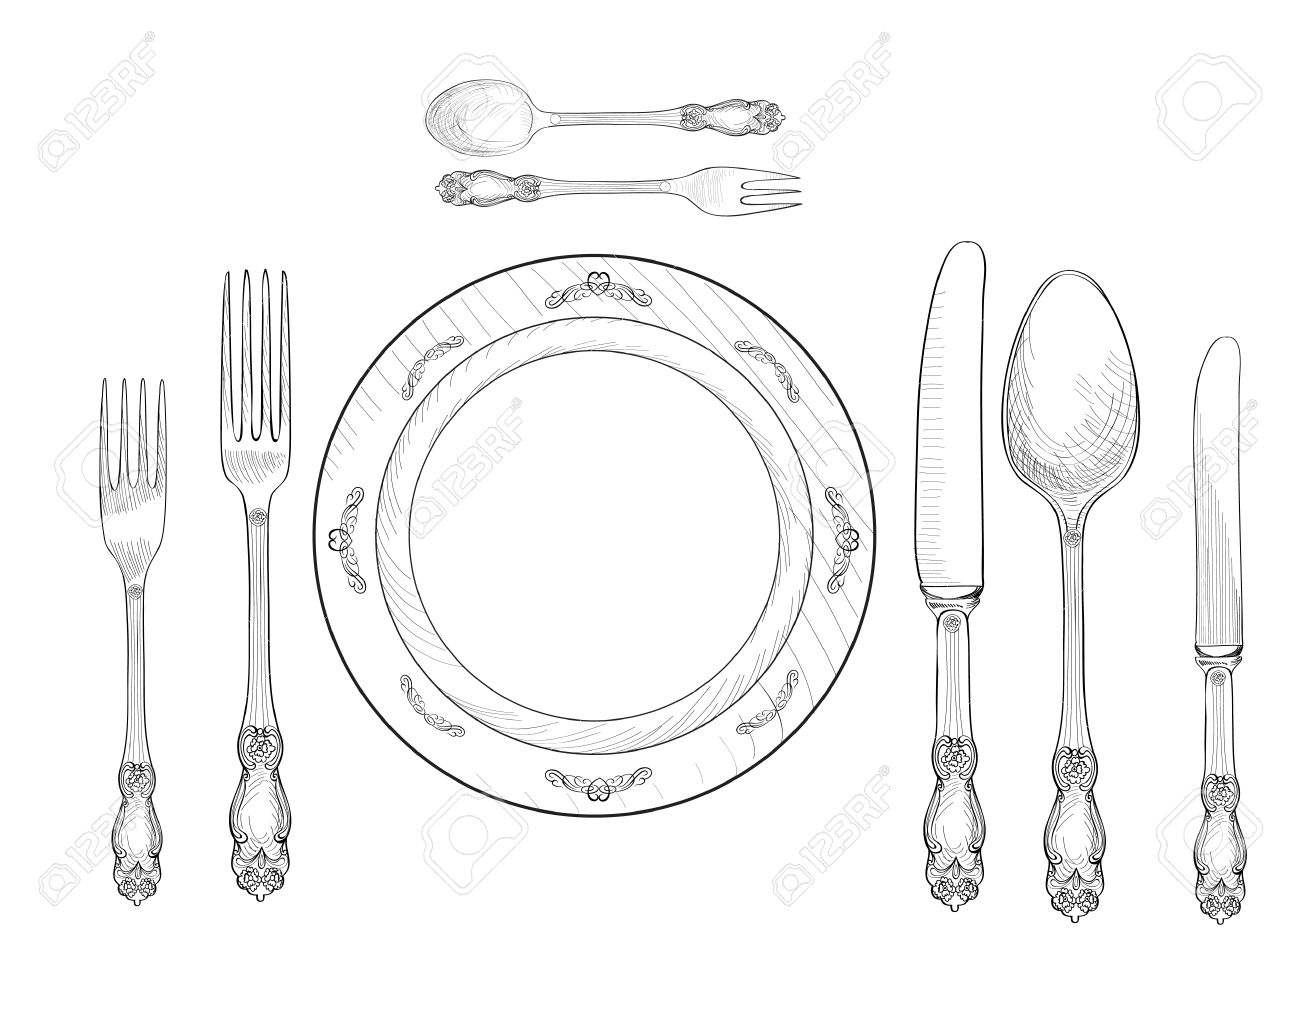 Table setting set. Fork Knife Spoon plate sketch set. Cutlery hand  sc 1 st  123RF.com & Table Setting Set. Fork Knife Spoon Plate Sketch Set. Cutlery ...